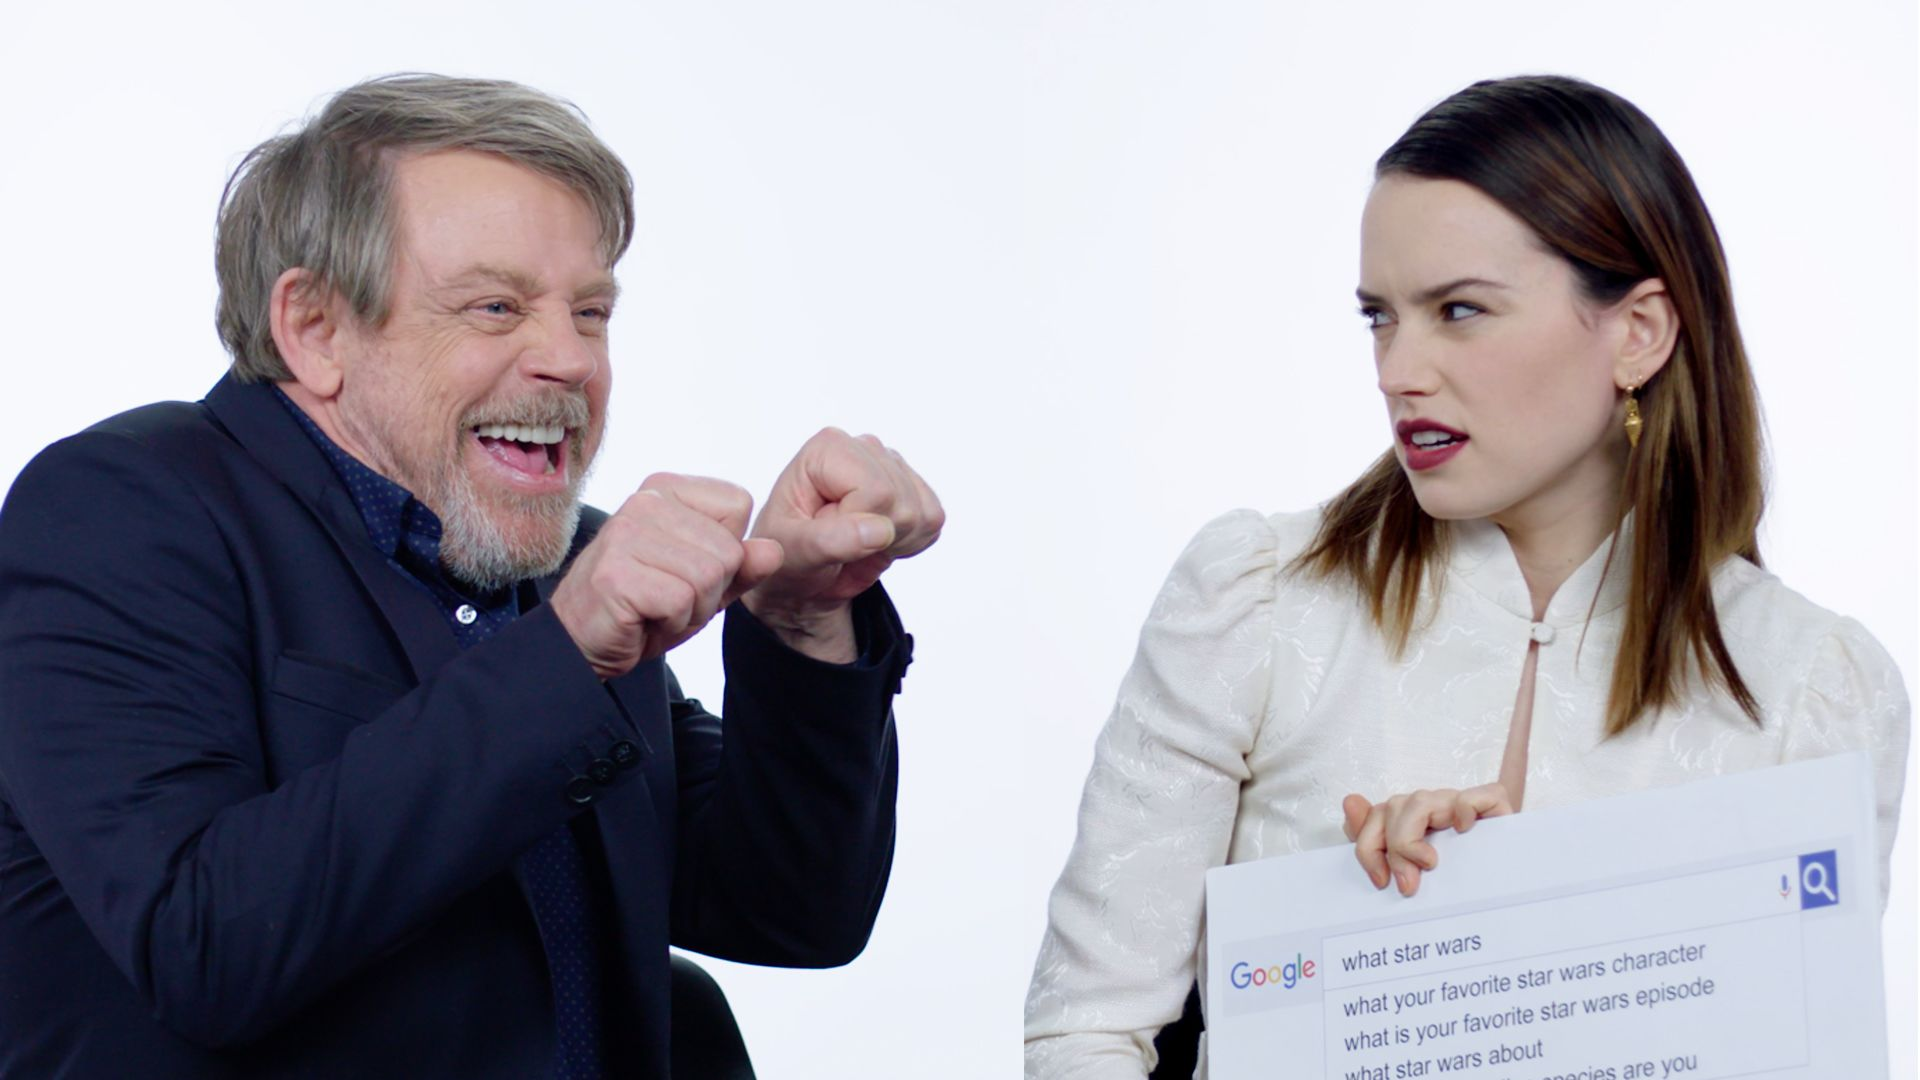 wired_the-last-jedi-cast-answer-the-web-s-most-searched-questions.jpg